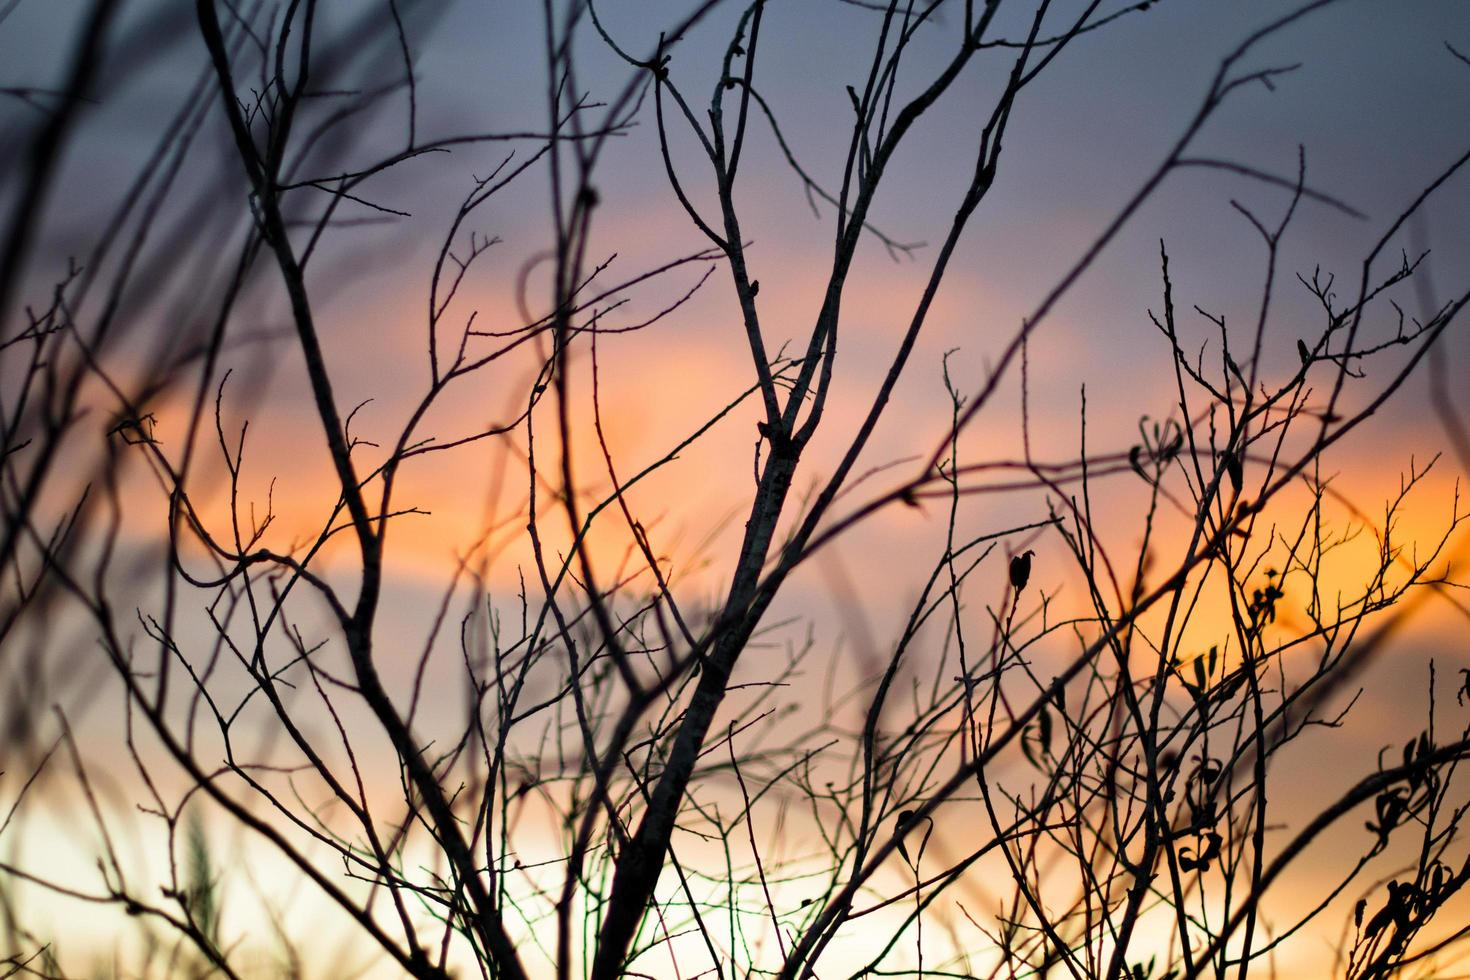 Bare trees during golden hour photo